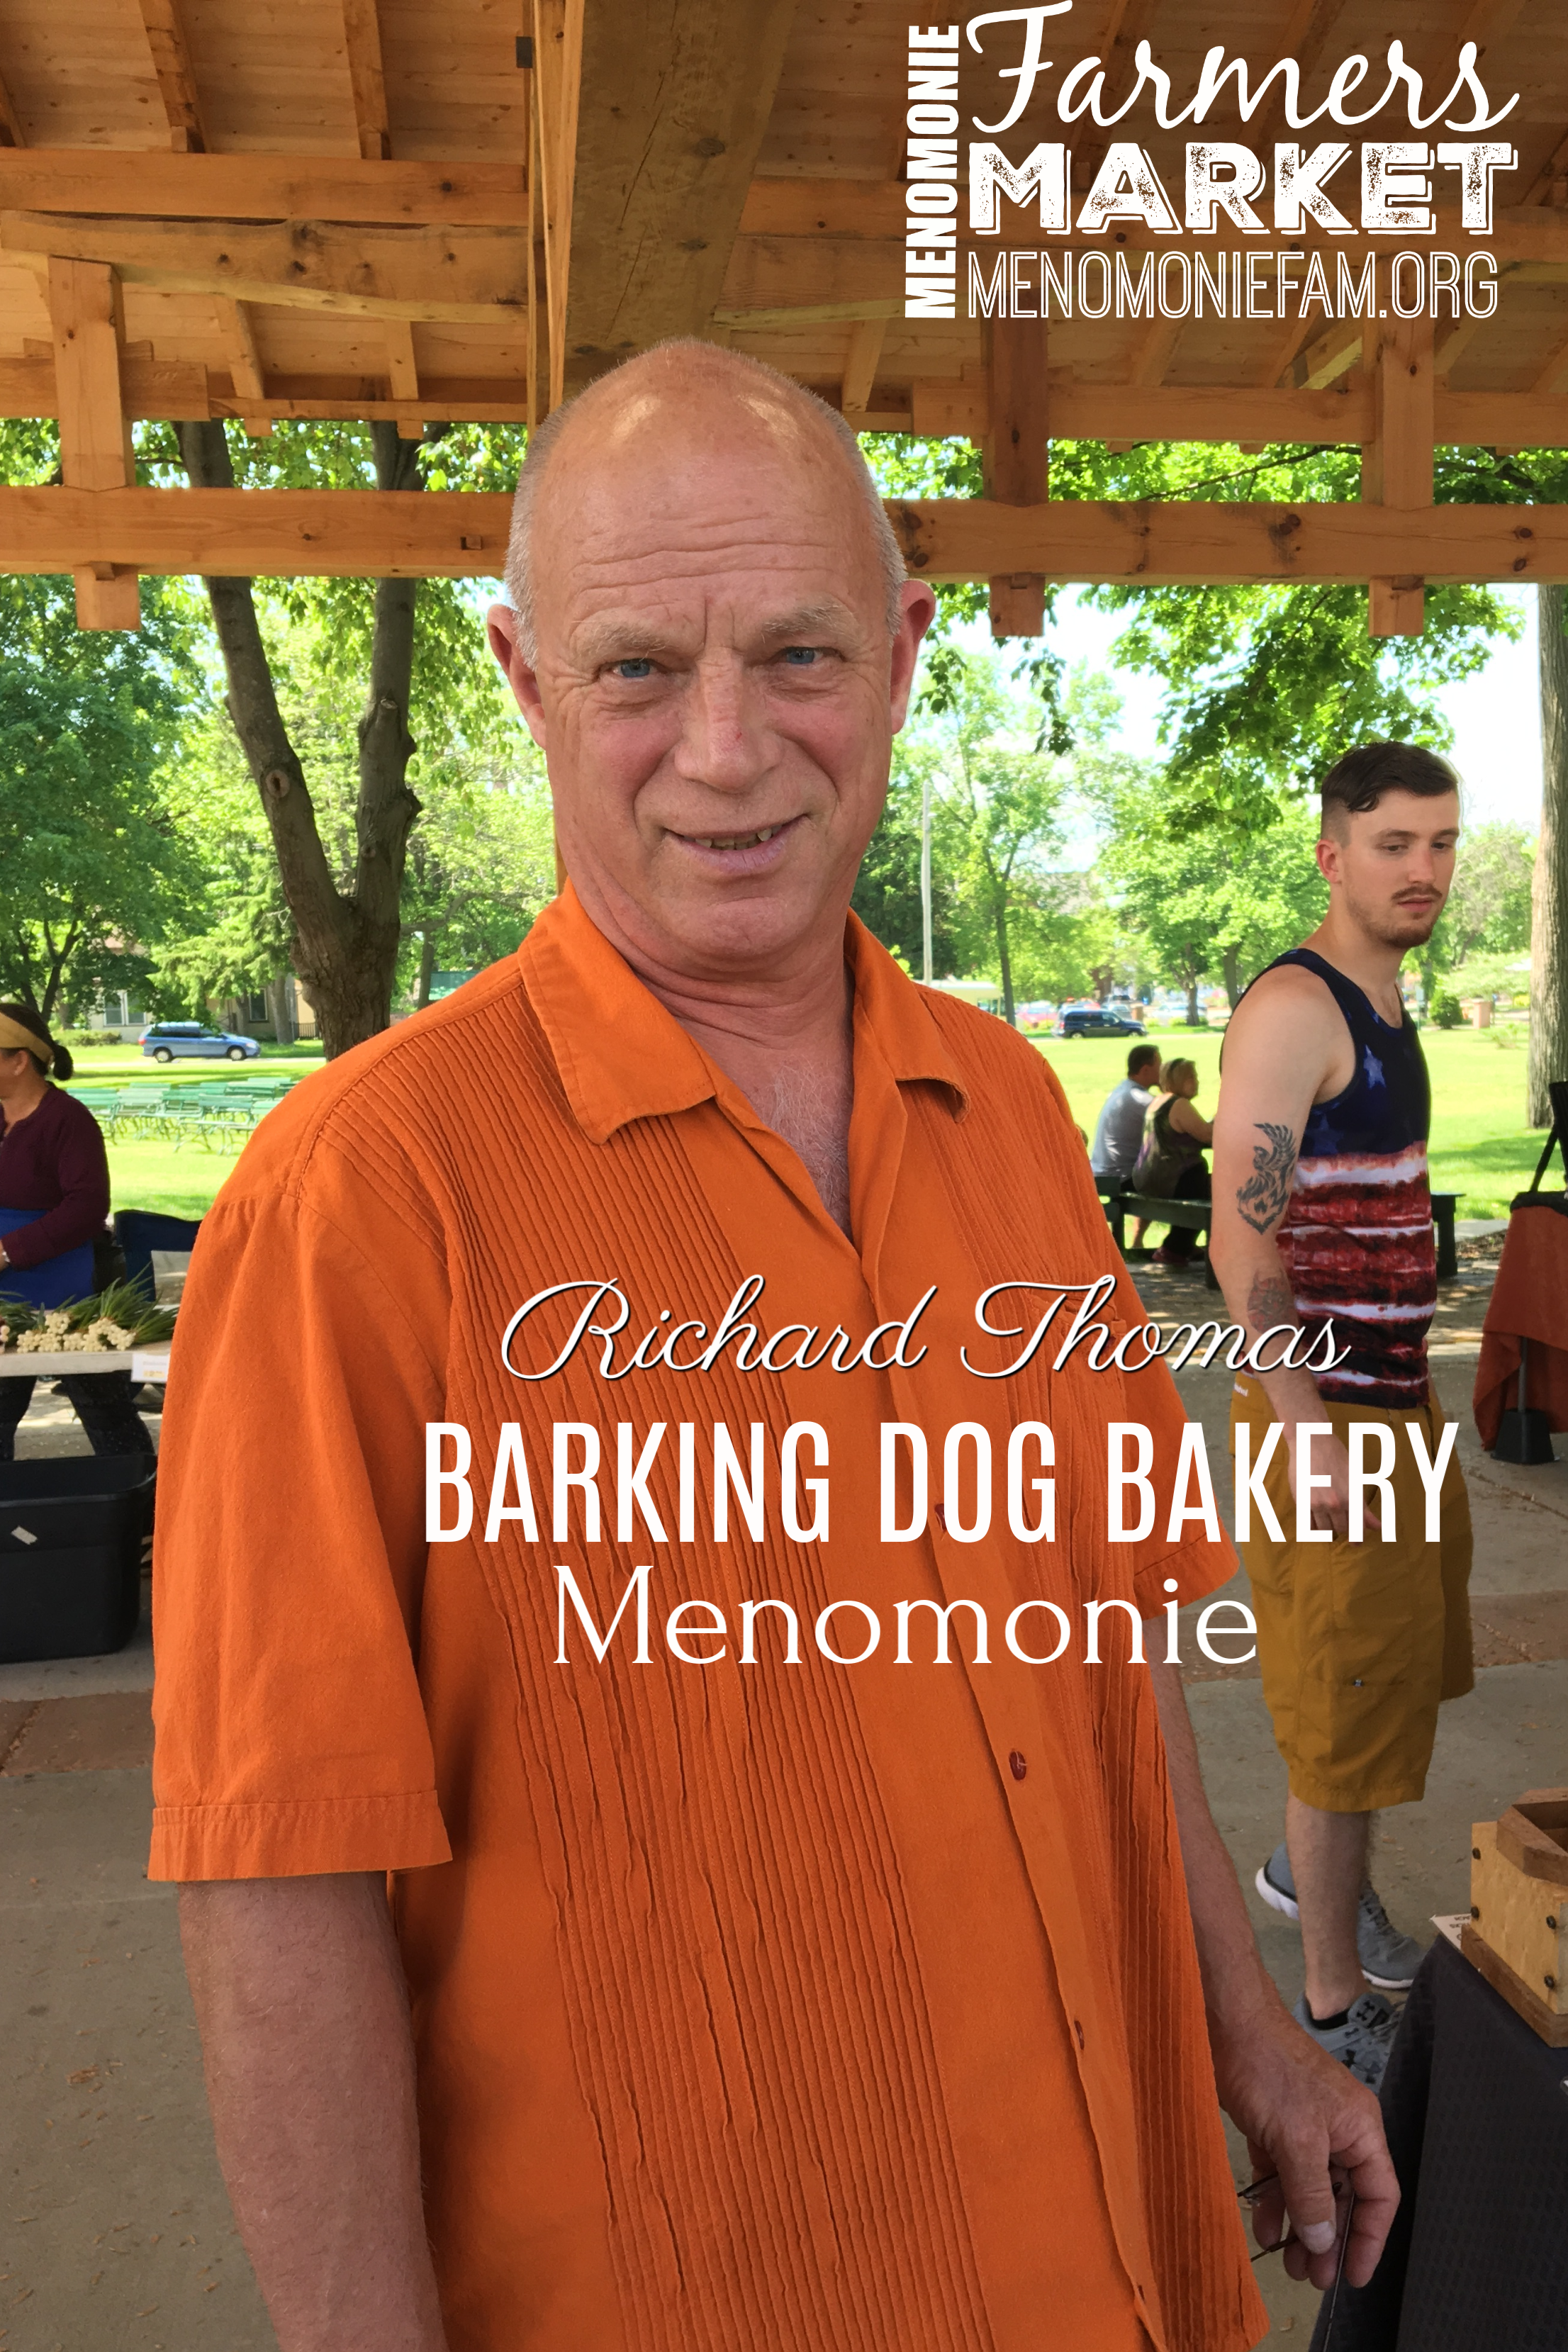 Barking Dog Bakery